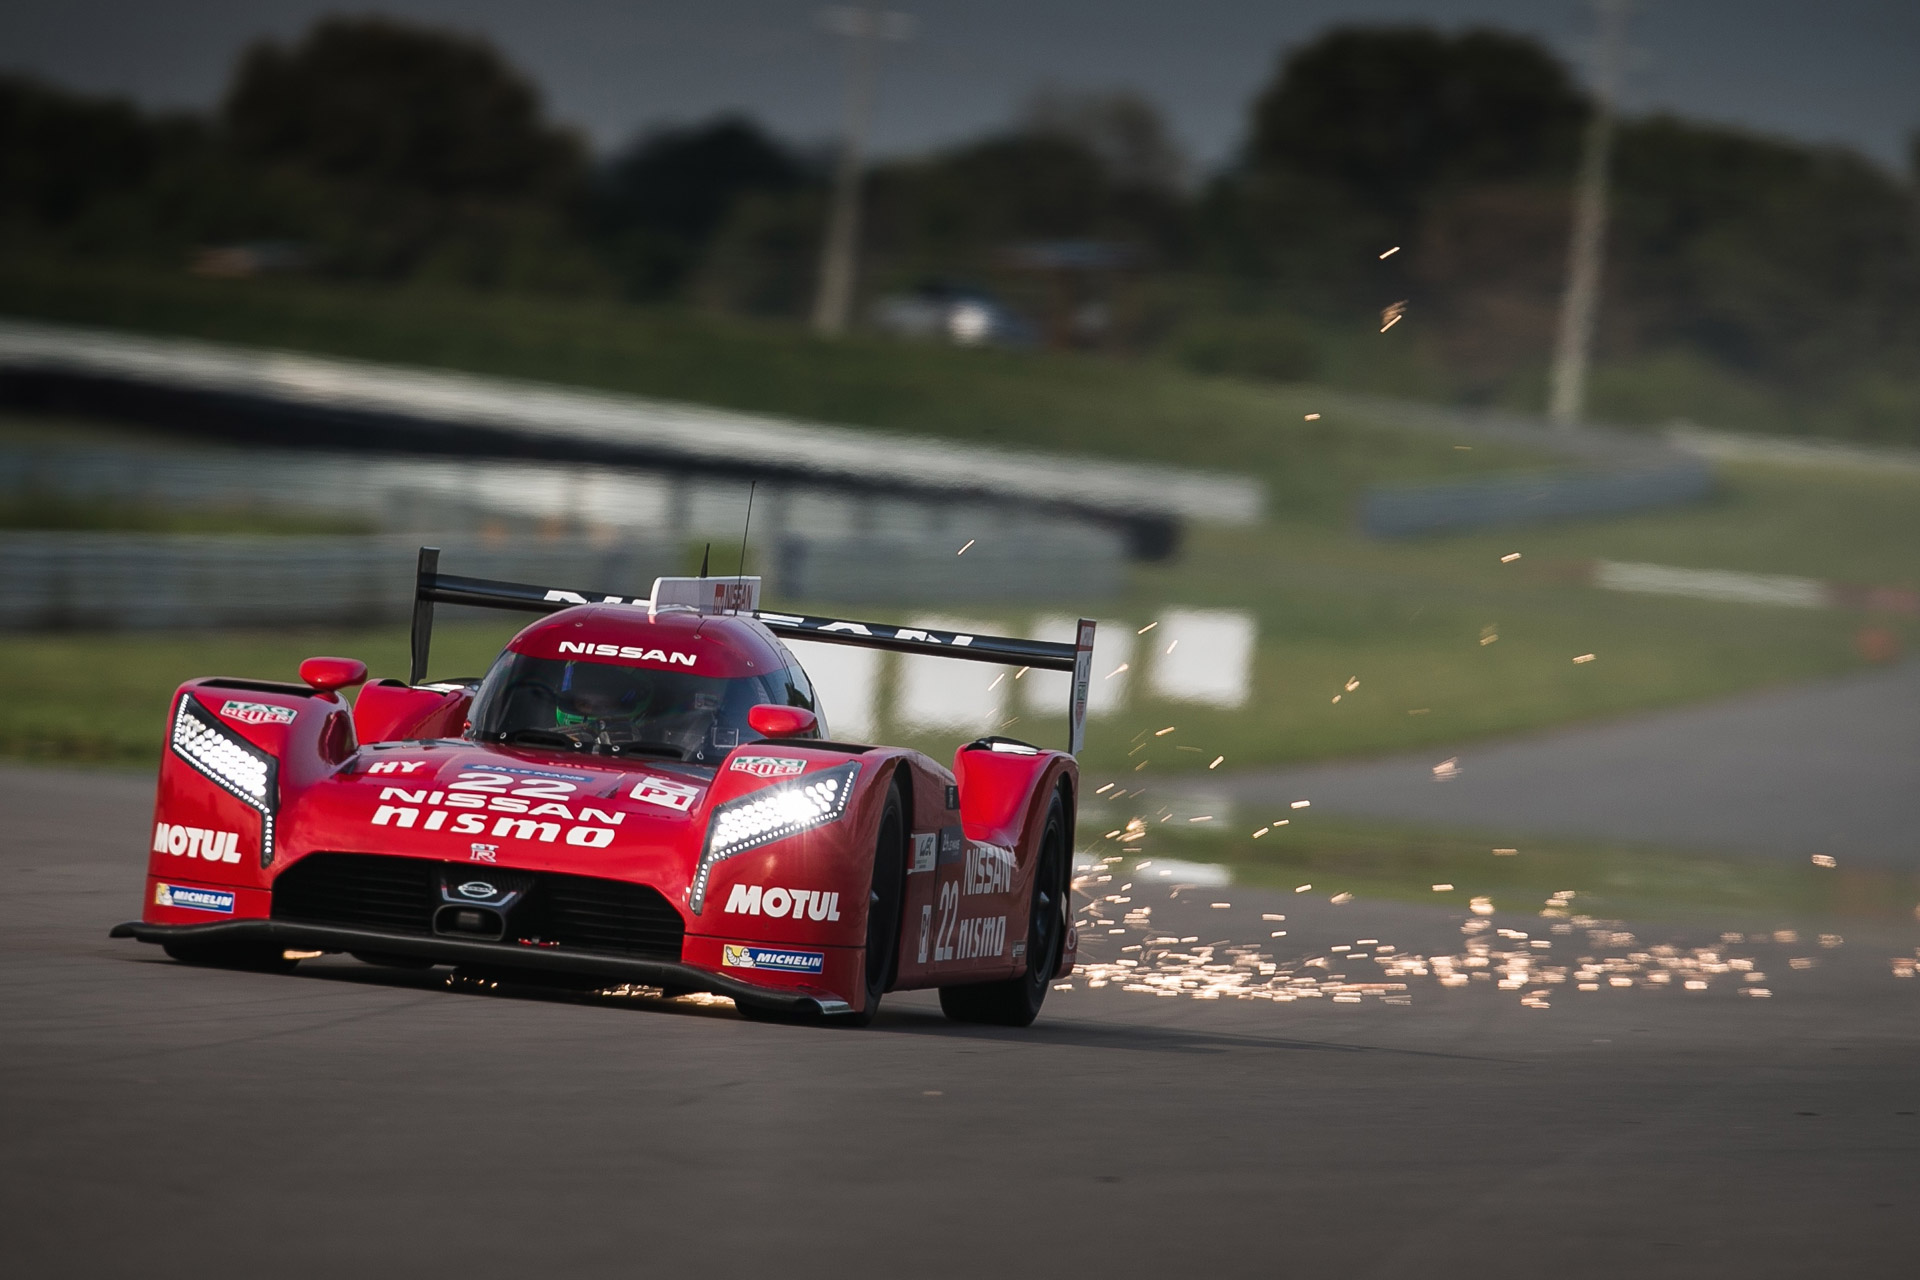 Nissan Finalizes Specs For GT-R LM NISMO Ahead Of 2015 Le Mans Race